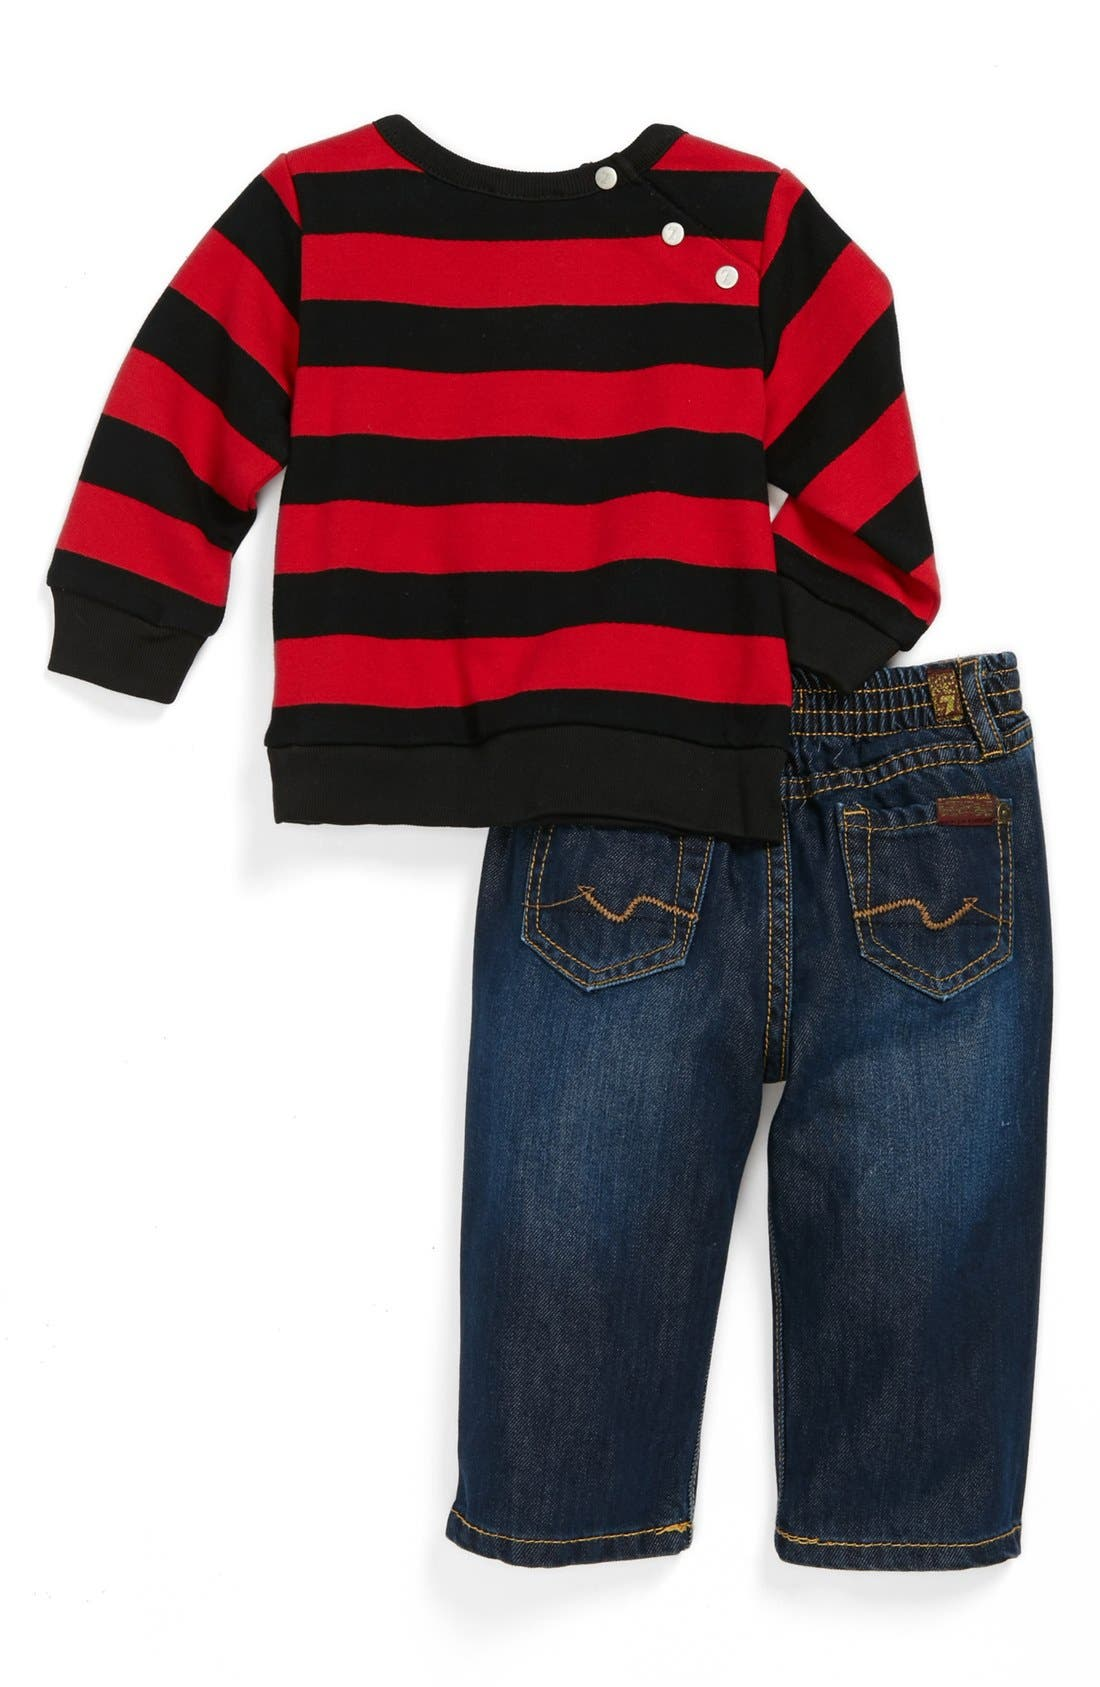 Alternate Image 2  - 7 For All Mankind® Dark Wash Jeans & Stripe Top (Baby Boys)